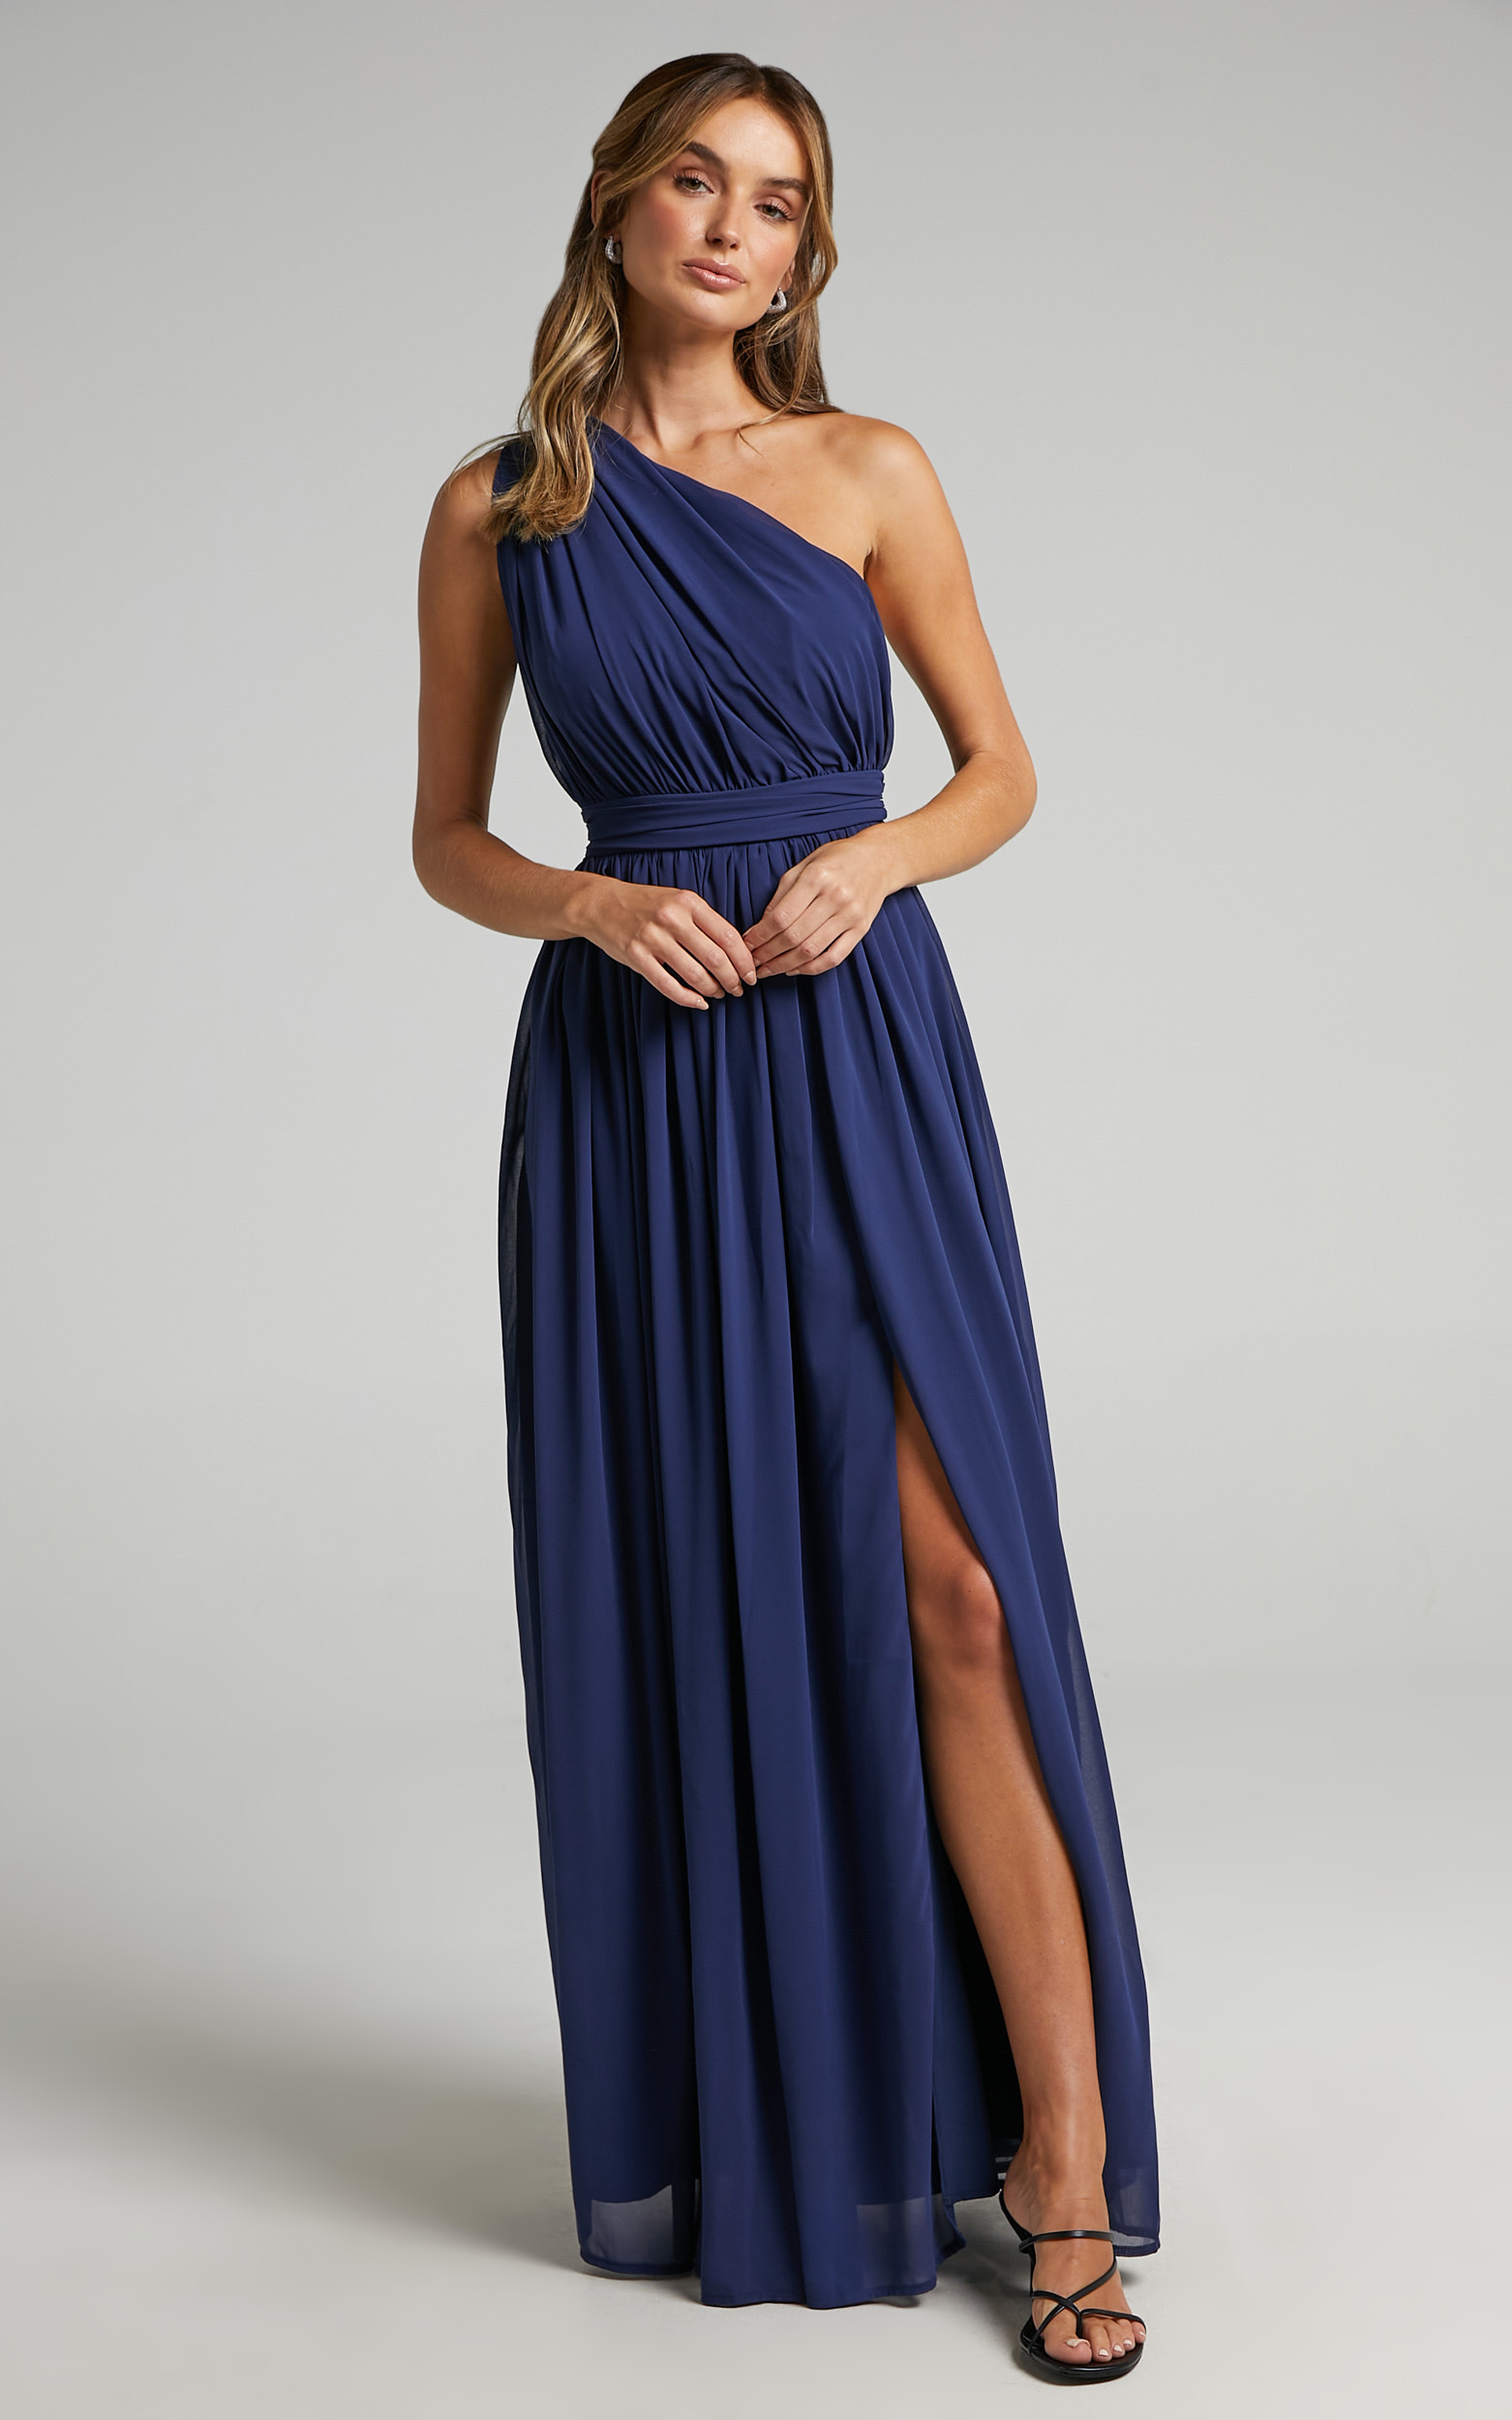 Kindred Hearts Dress in Navy - 06, NVY1, hi-res image number null